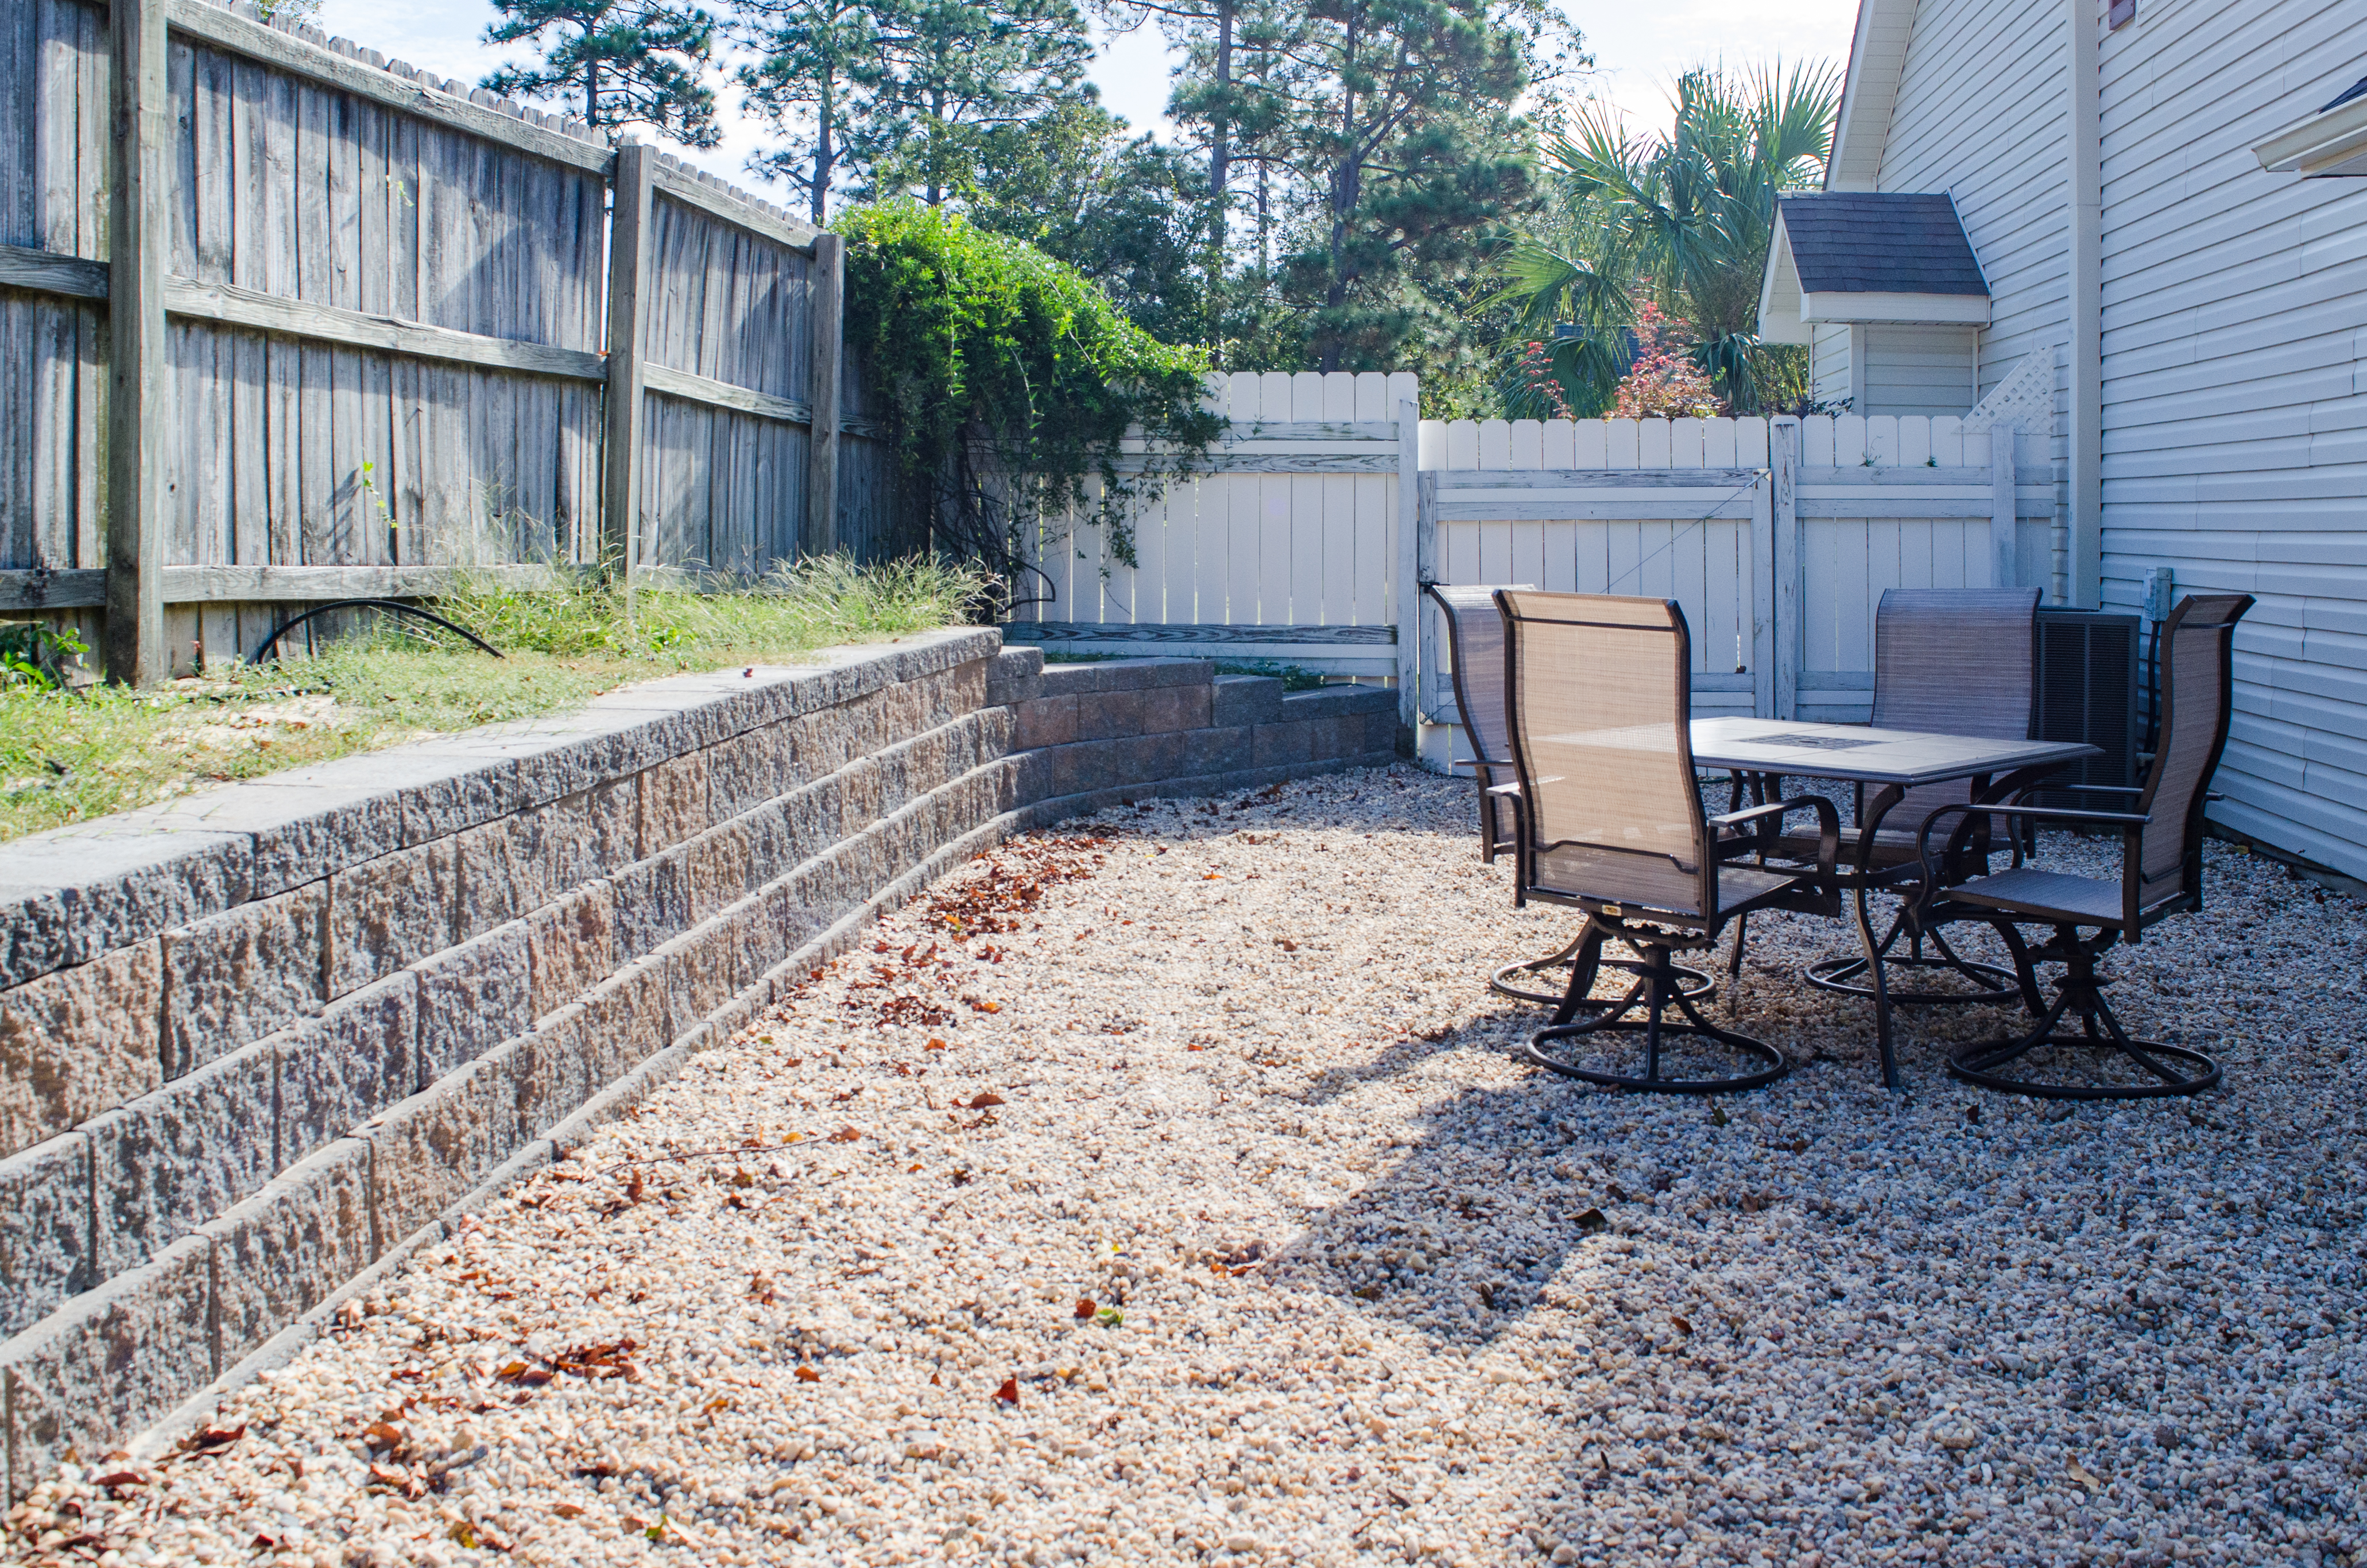 erosion protection for a sloped backyard landscaping lawn care